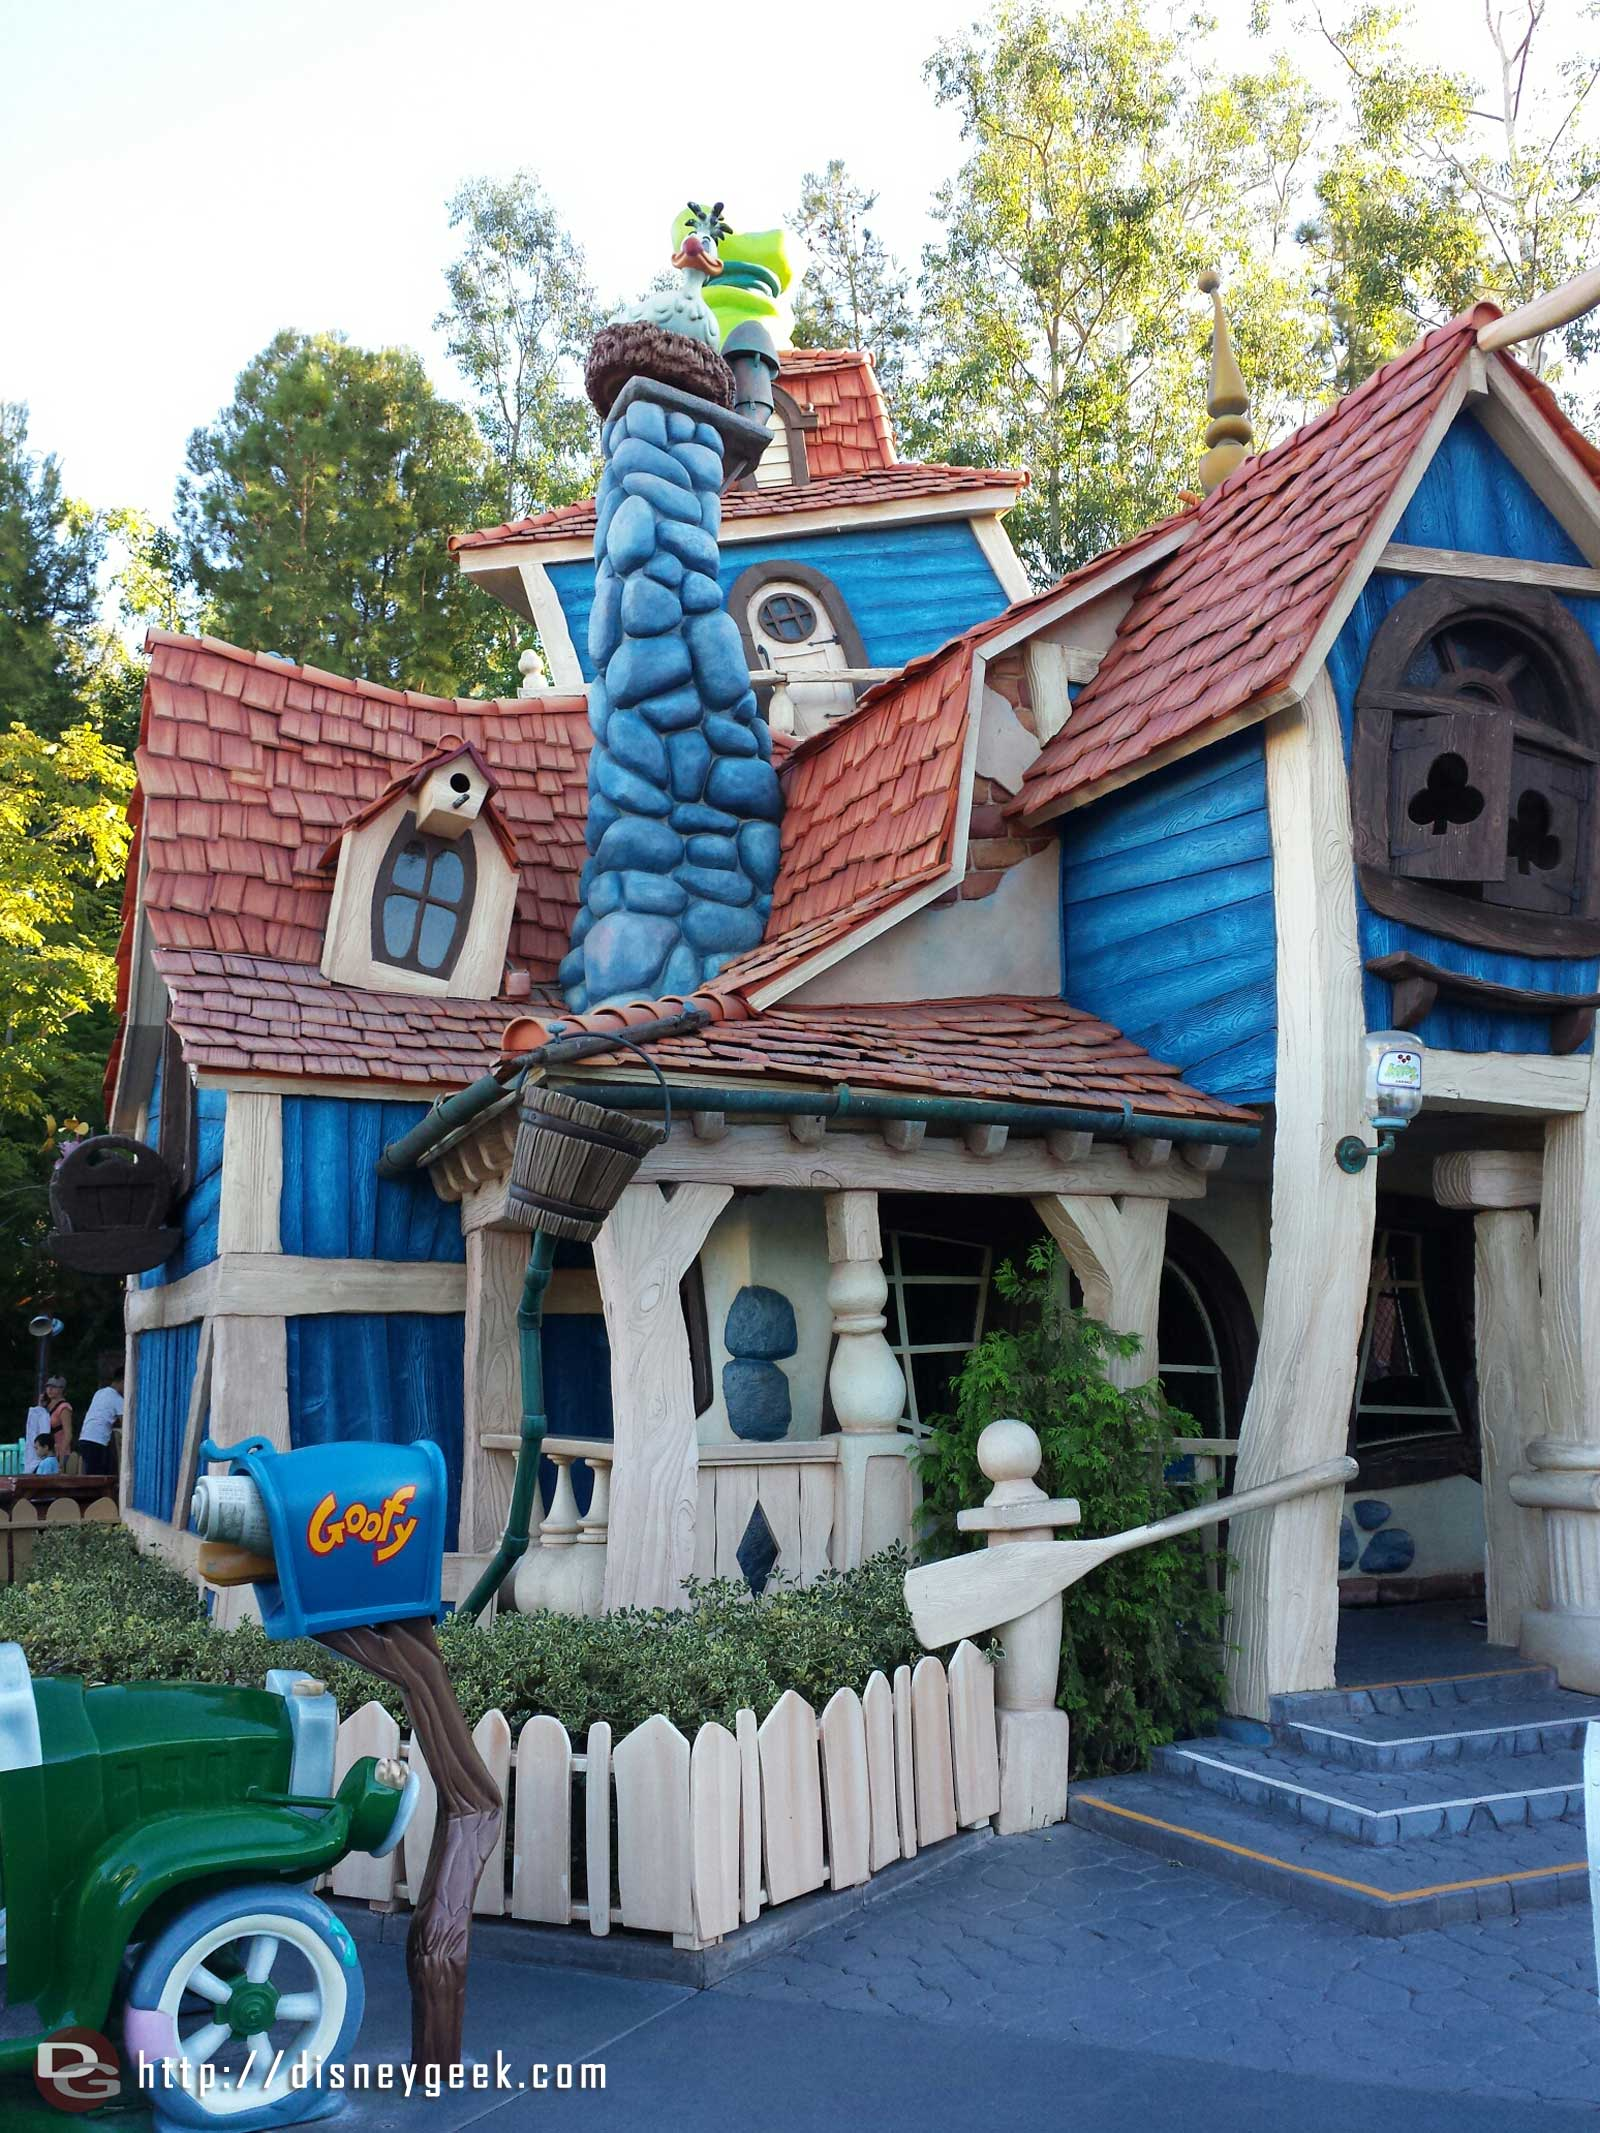 Goofy's House in Toontown #Disneyland